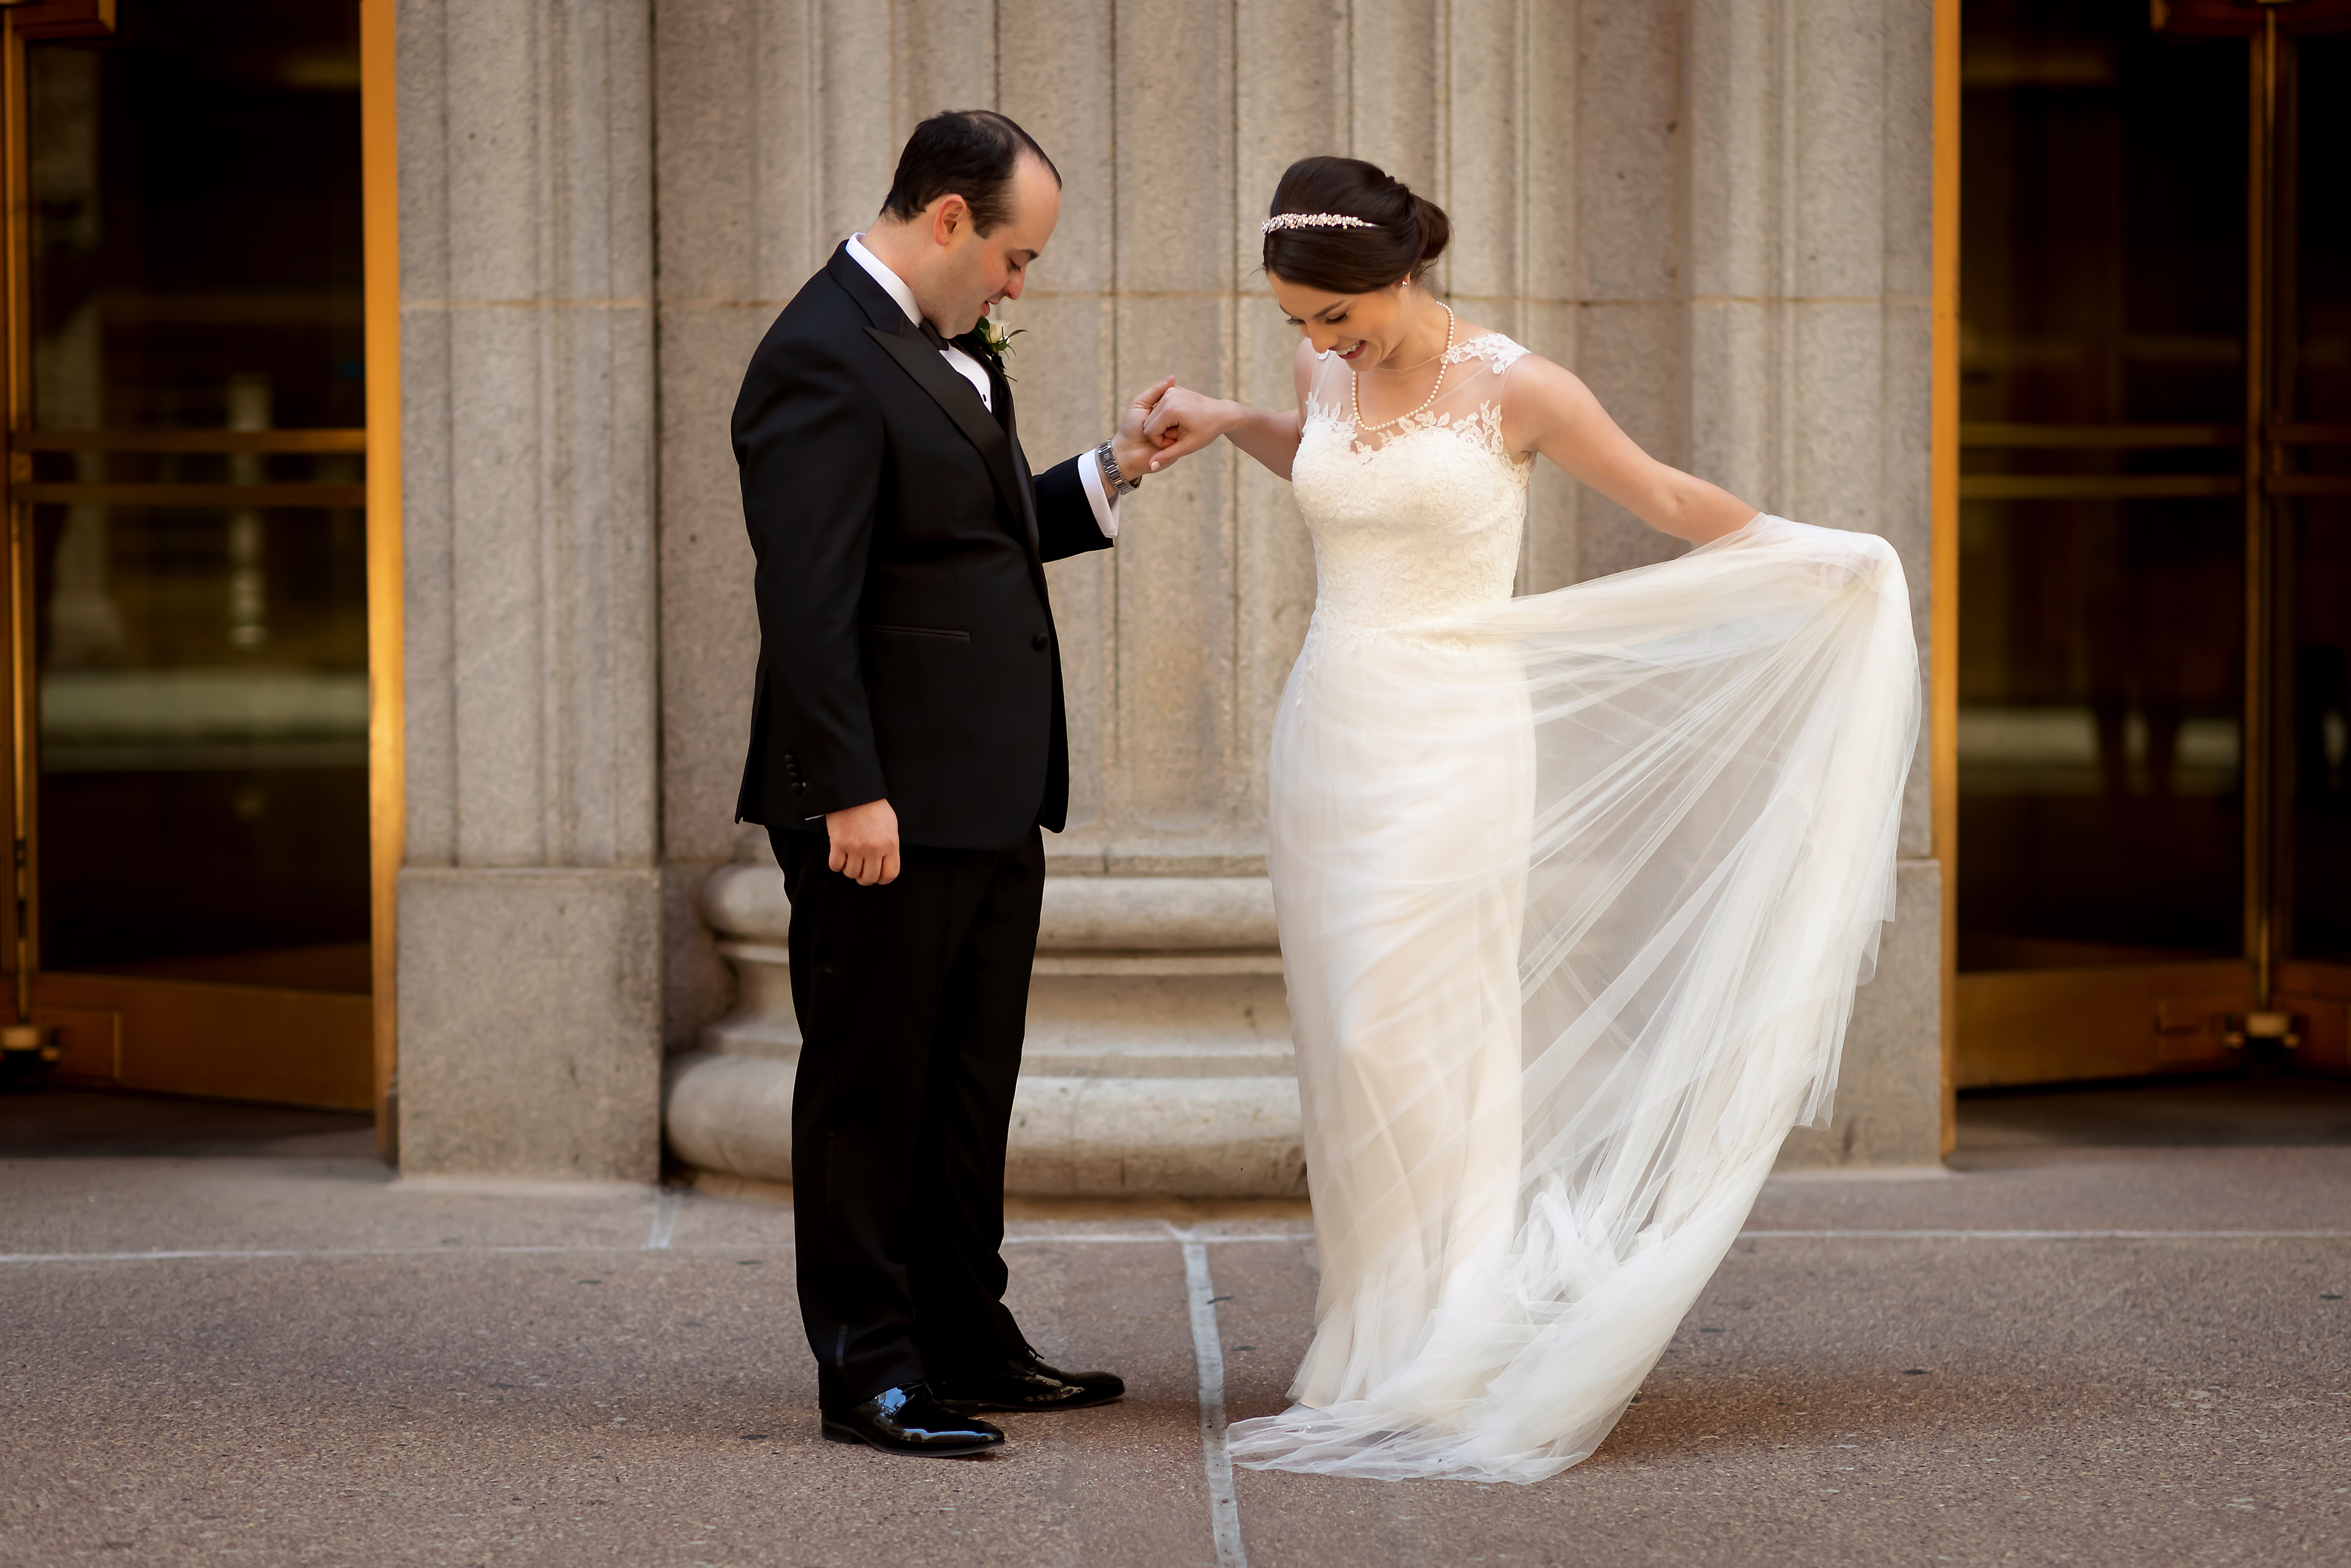 Groom reacts to seeing bride during first look on LaSalle Street in Chicago